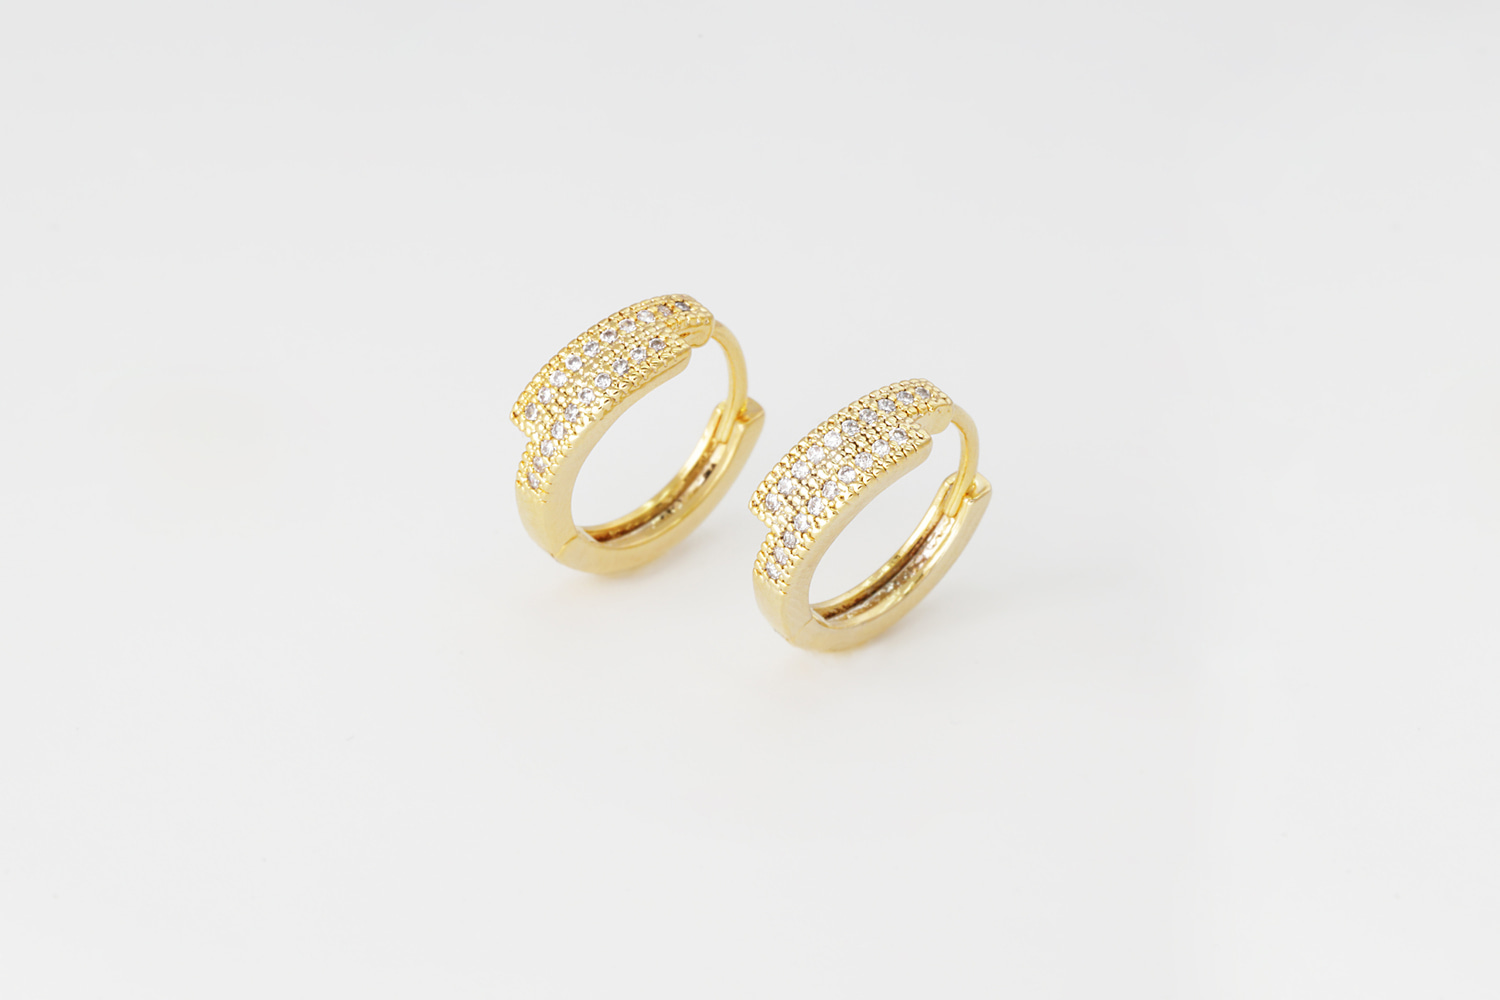 [T68-P2] Double Cubic One Touch Earring, 16K gold plated brass, Nickel free, Cubic zirconia